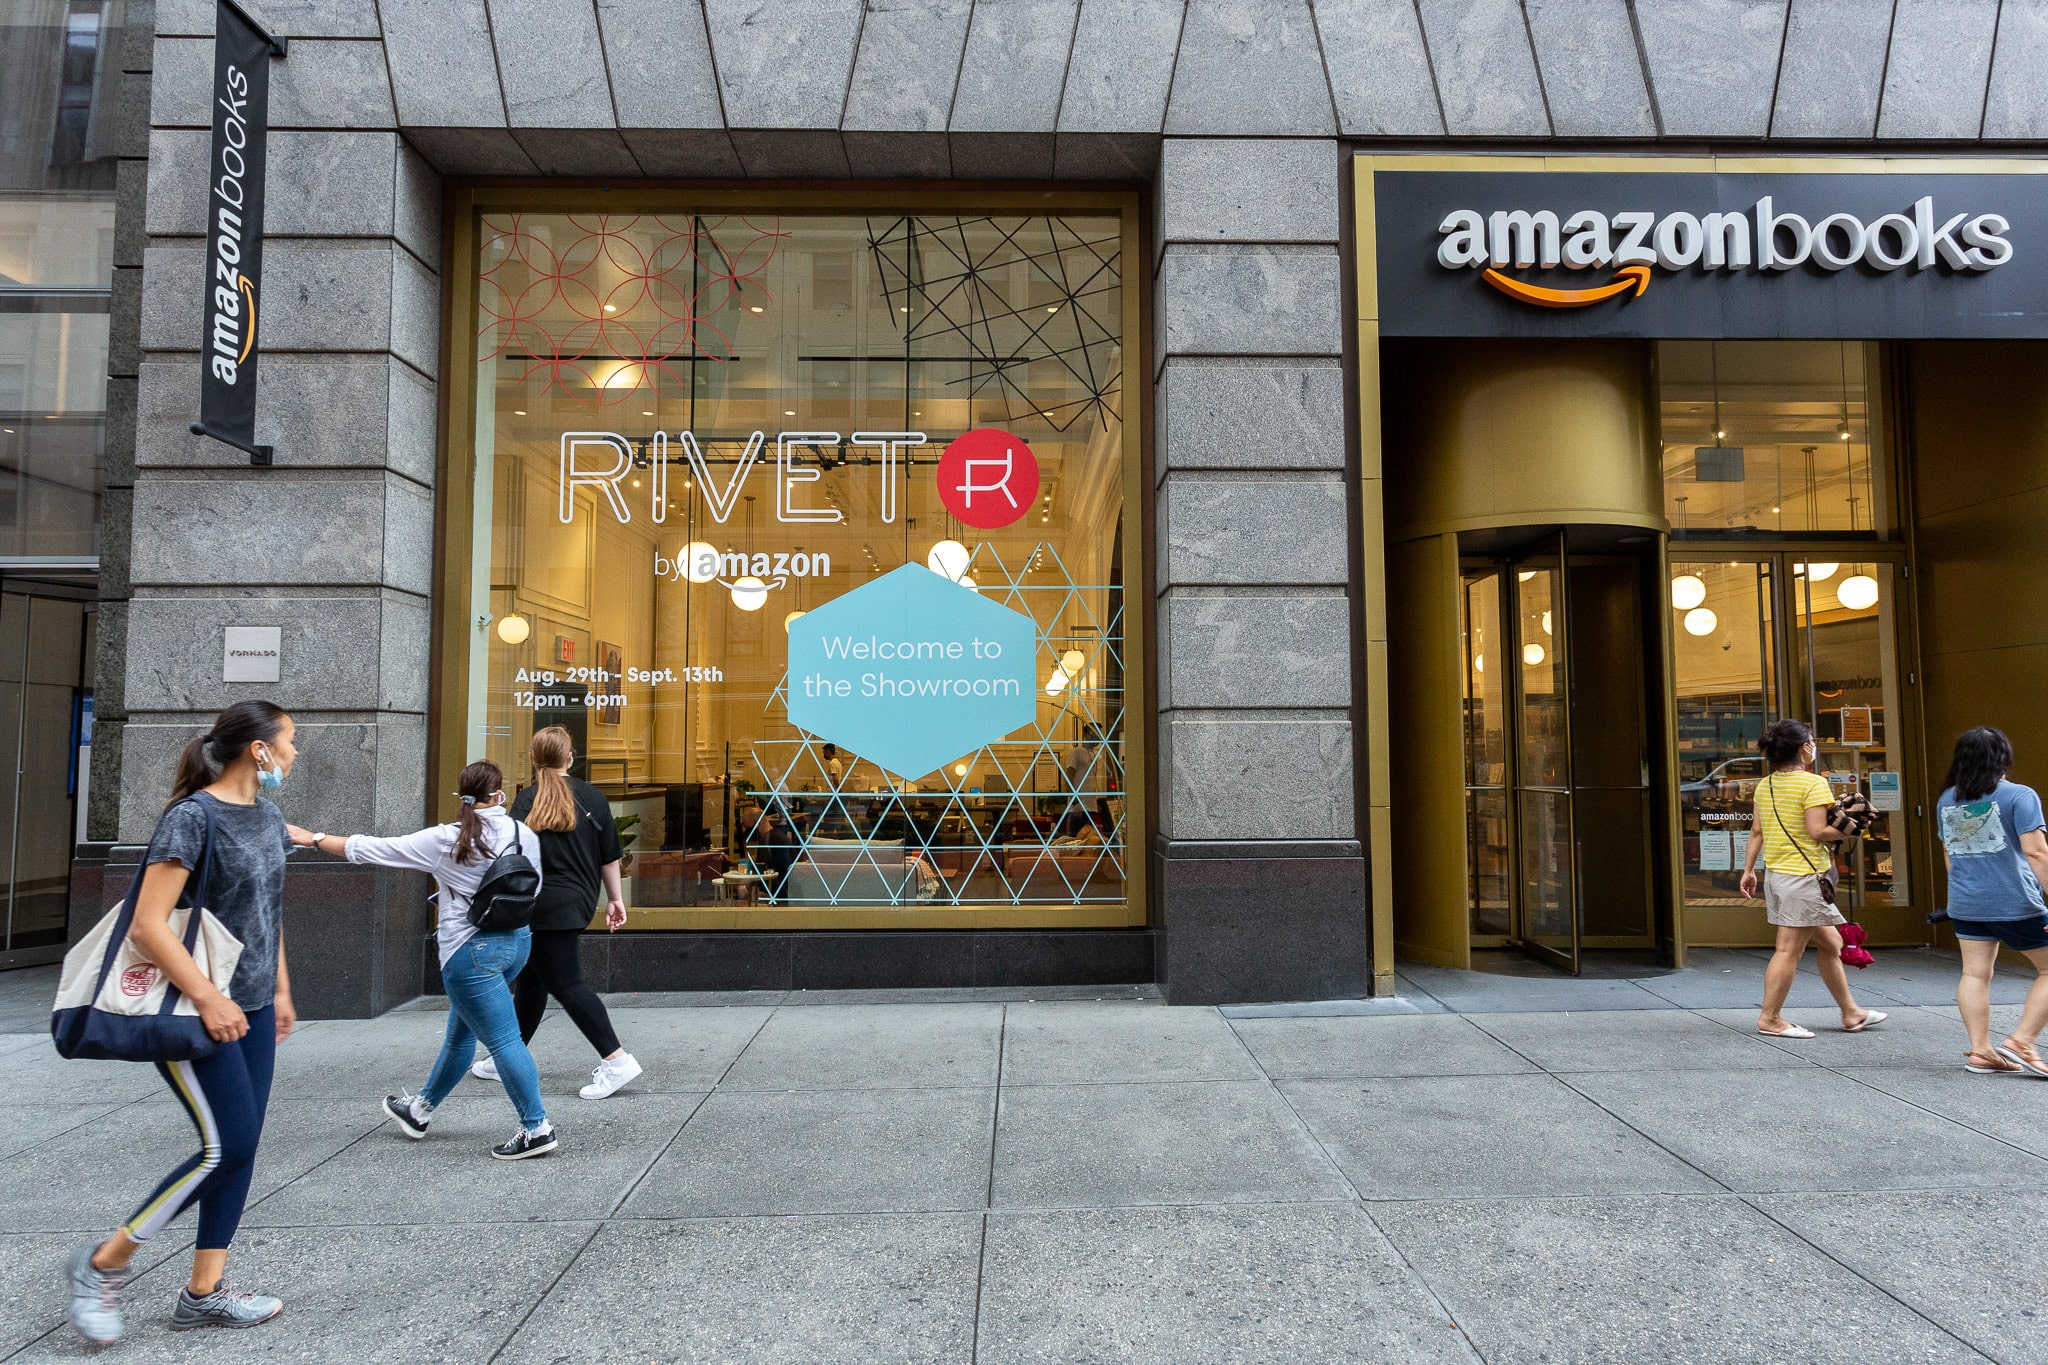 outdoor signage at amazon bookstore experiential events